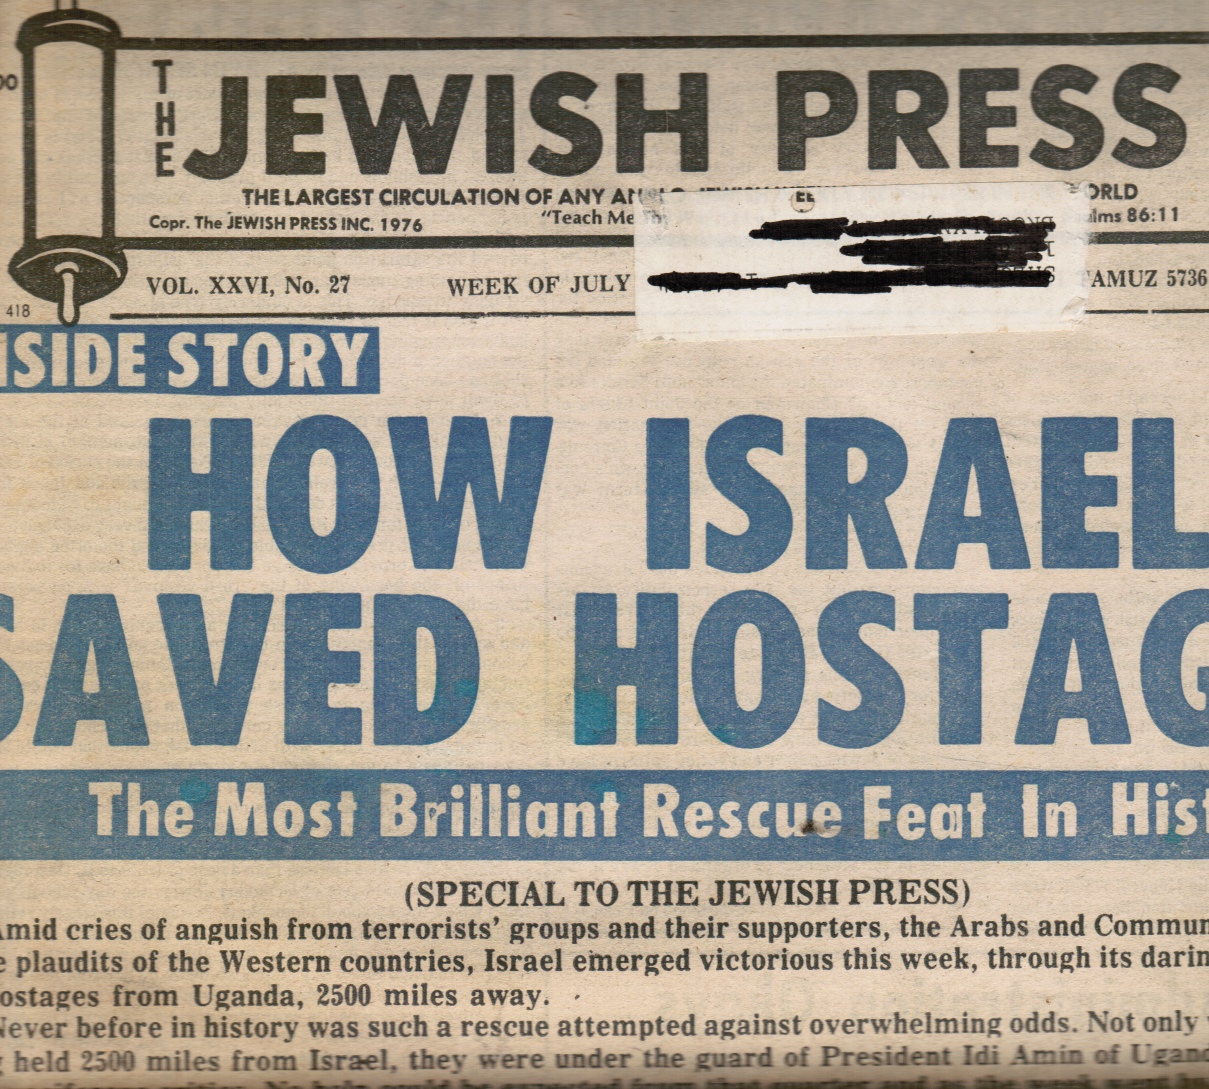 Image for The Jewish Press - July 1976 How Israel Saves Hostages (Entebbe) -- Cover Story